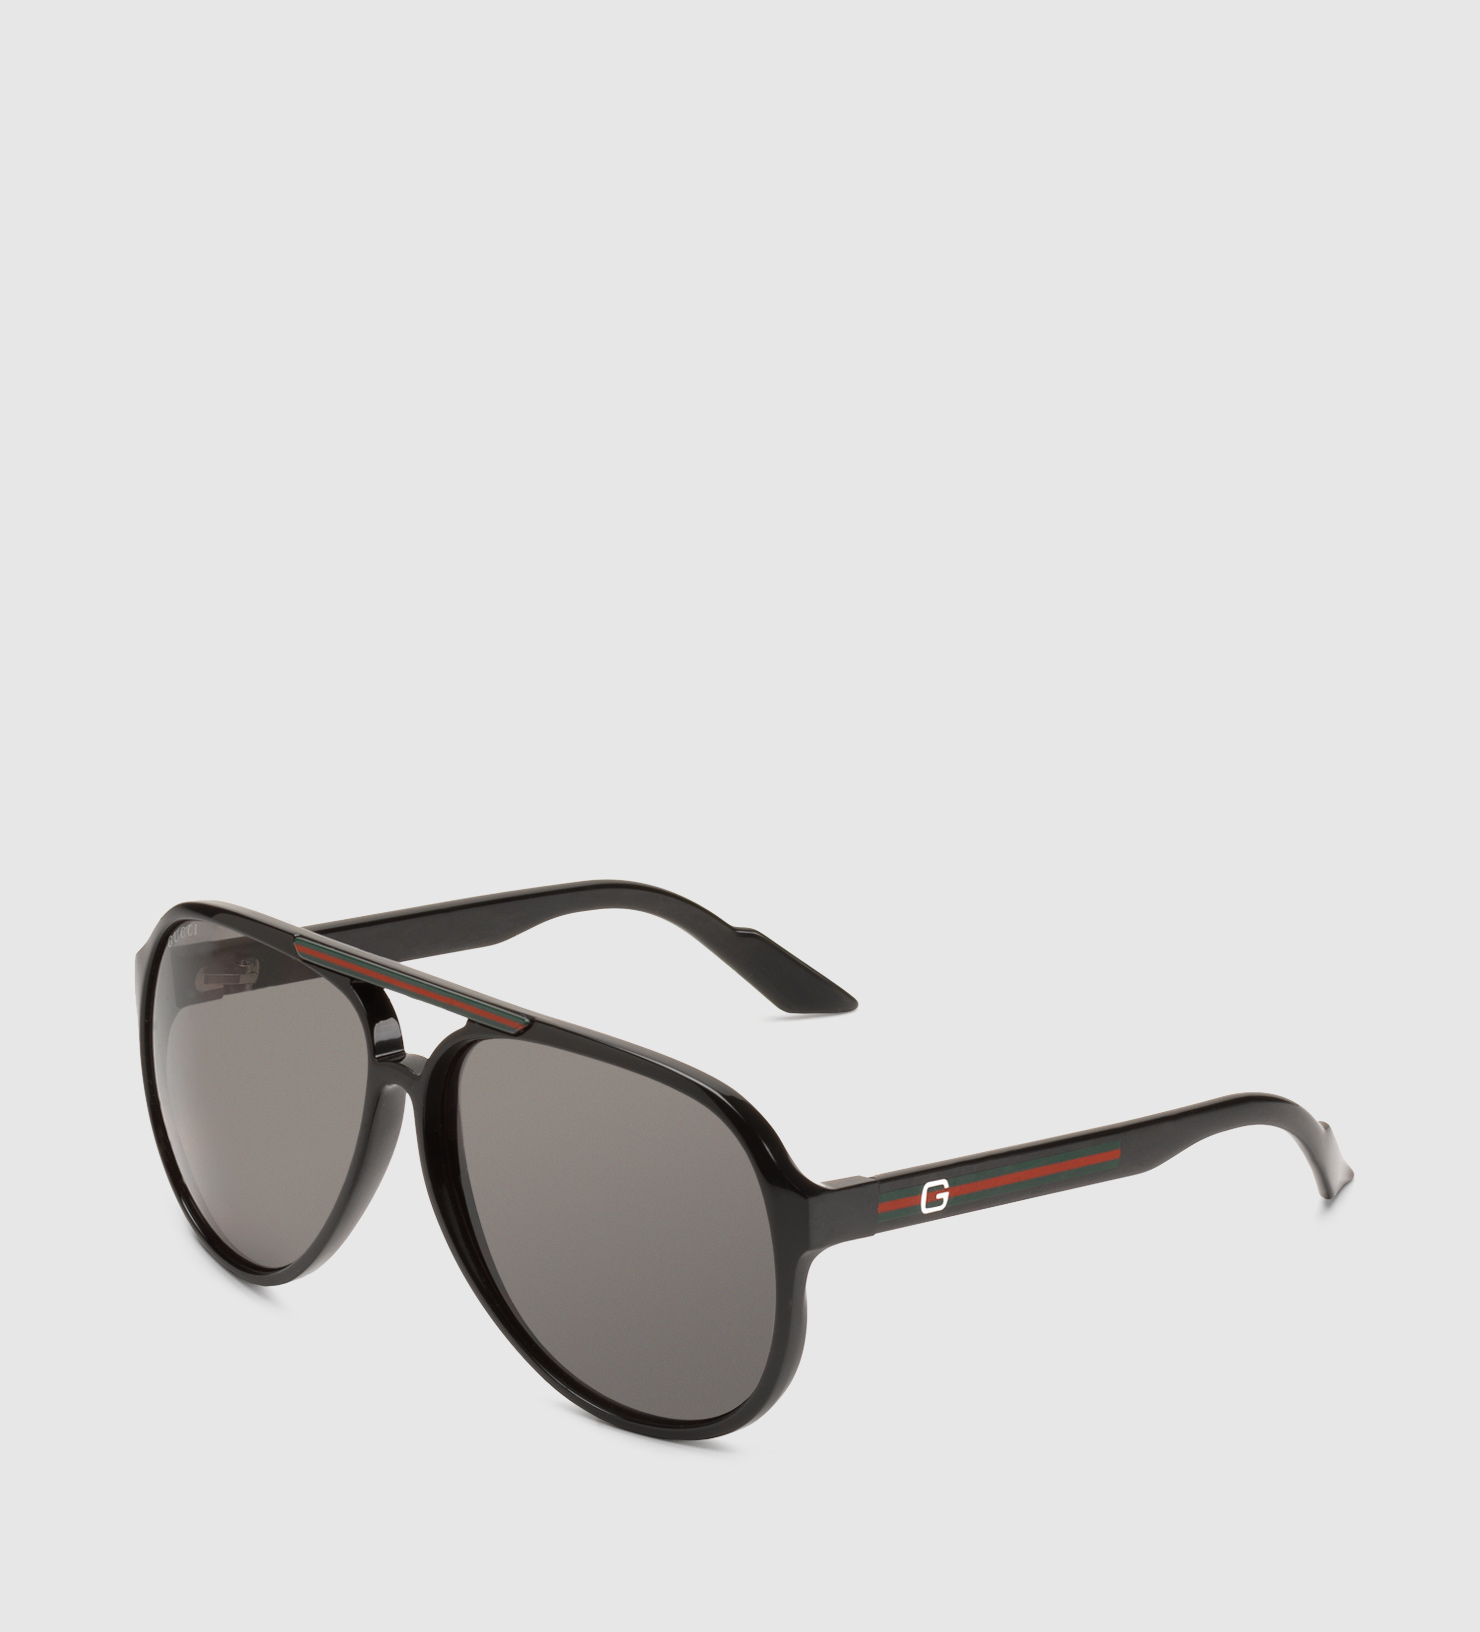 f59f6ecfc7 Gucci Medium Aviator Sunglasses With G Detail And Signature Web On Temple  in Black for Men